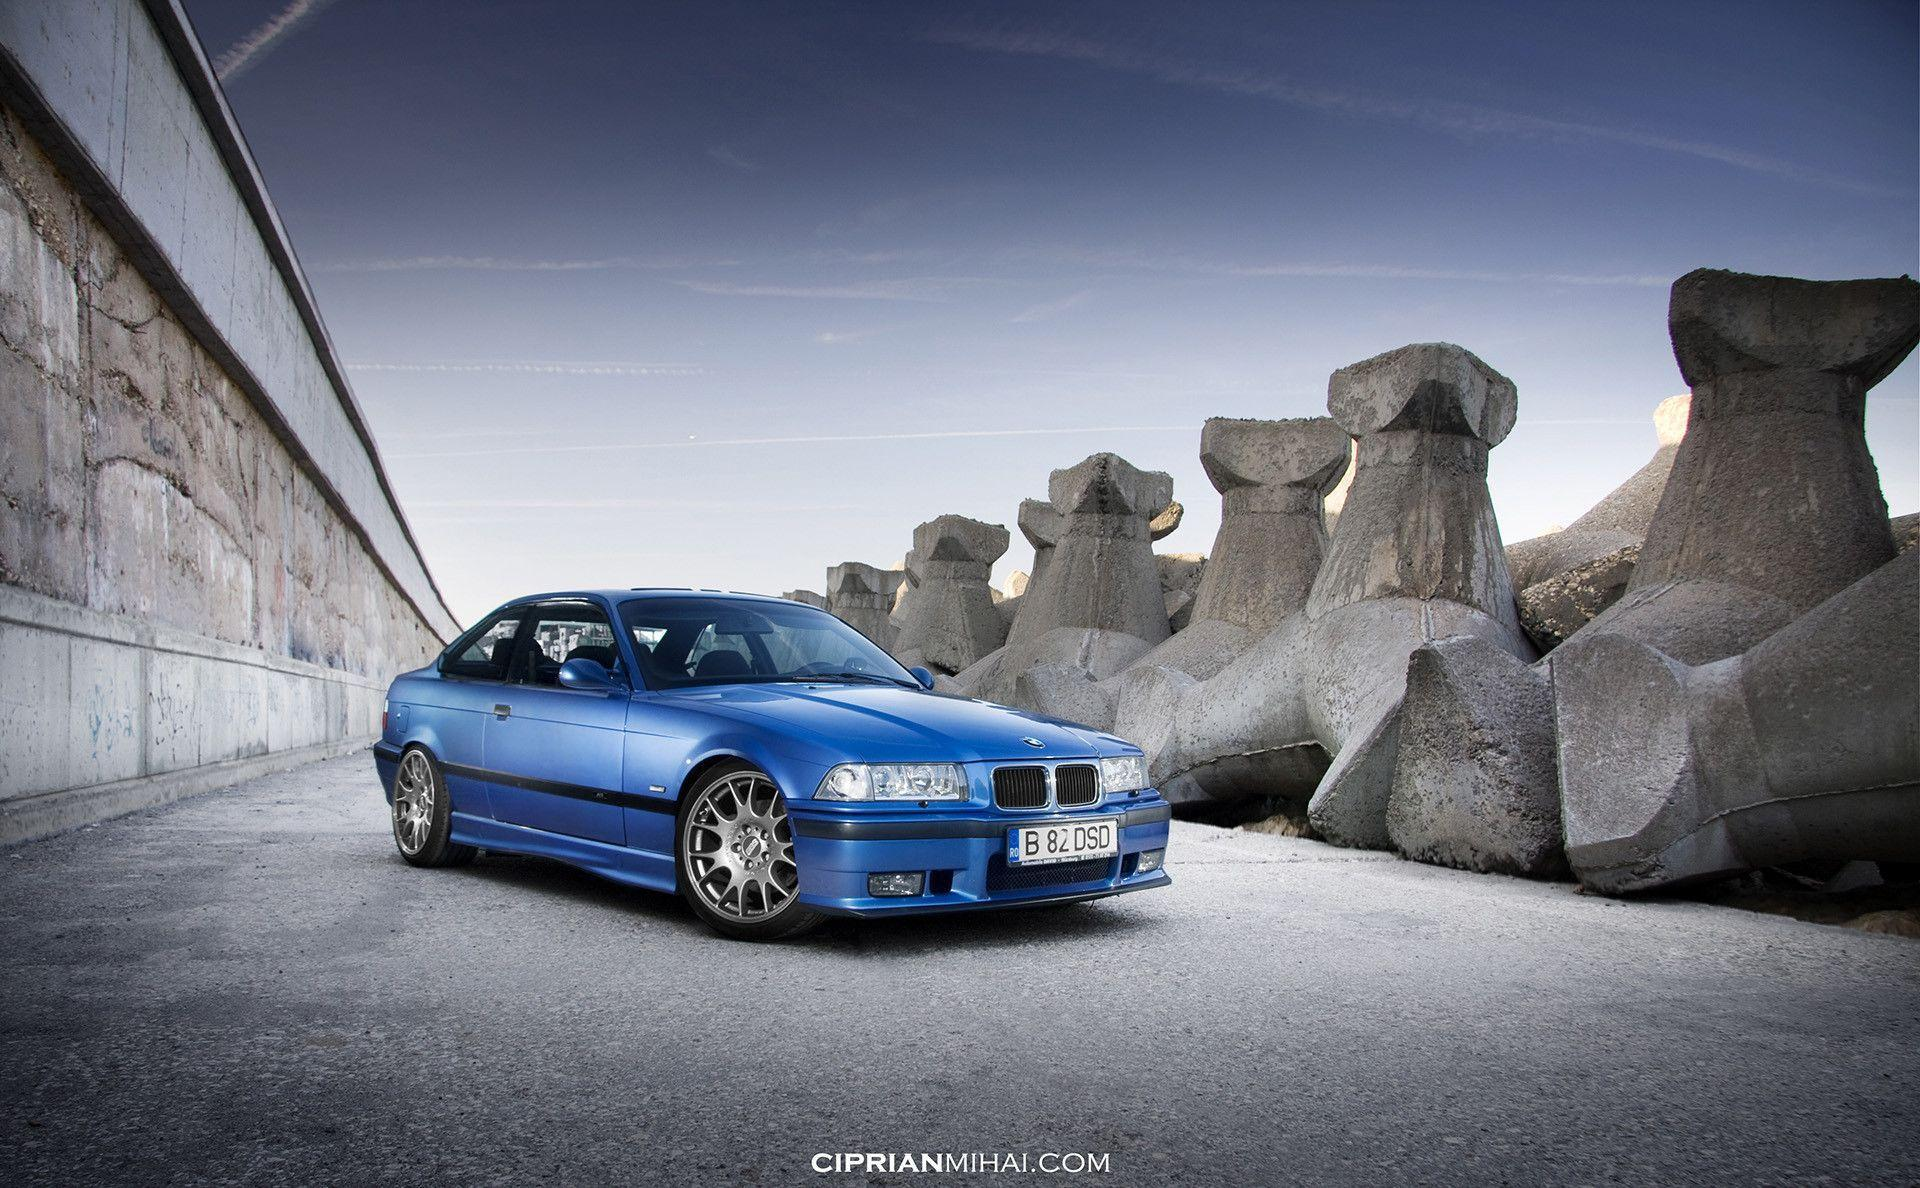 74 Bmw E36 M3 Wallpaper On Wallpapersafari